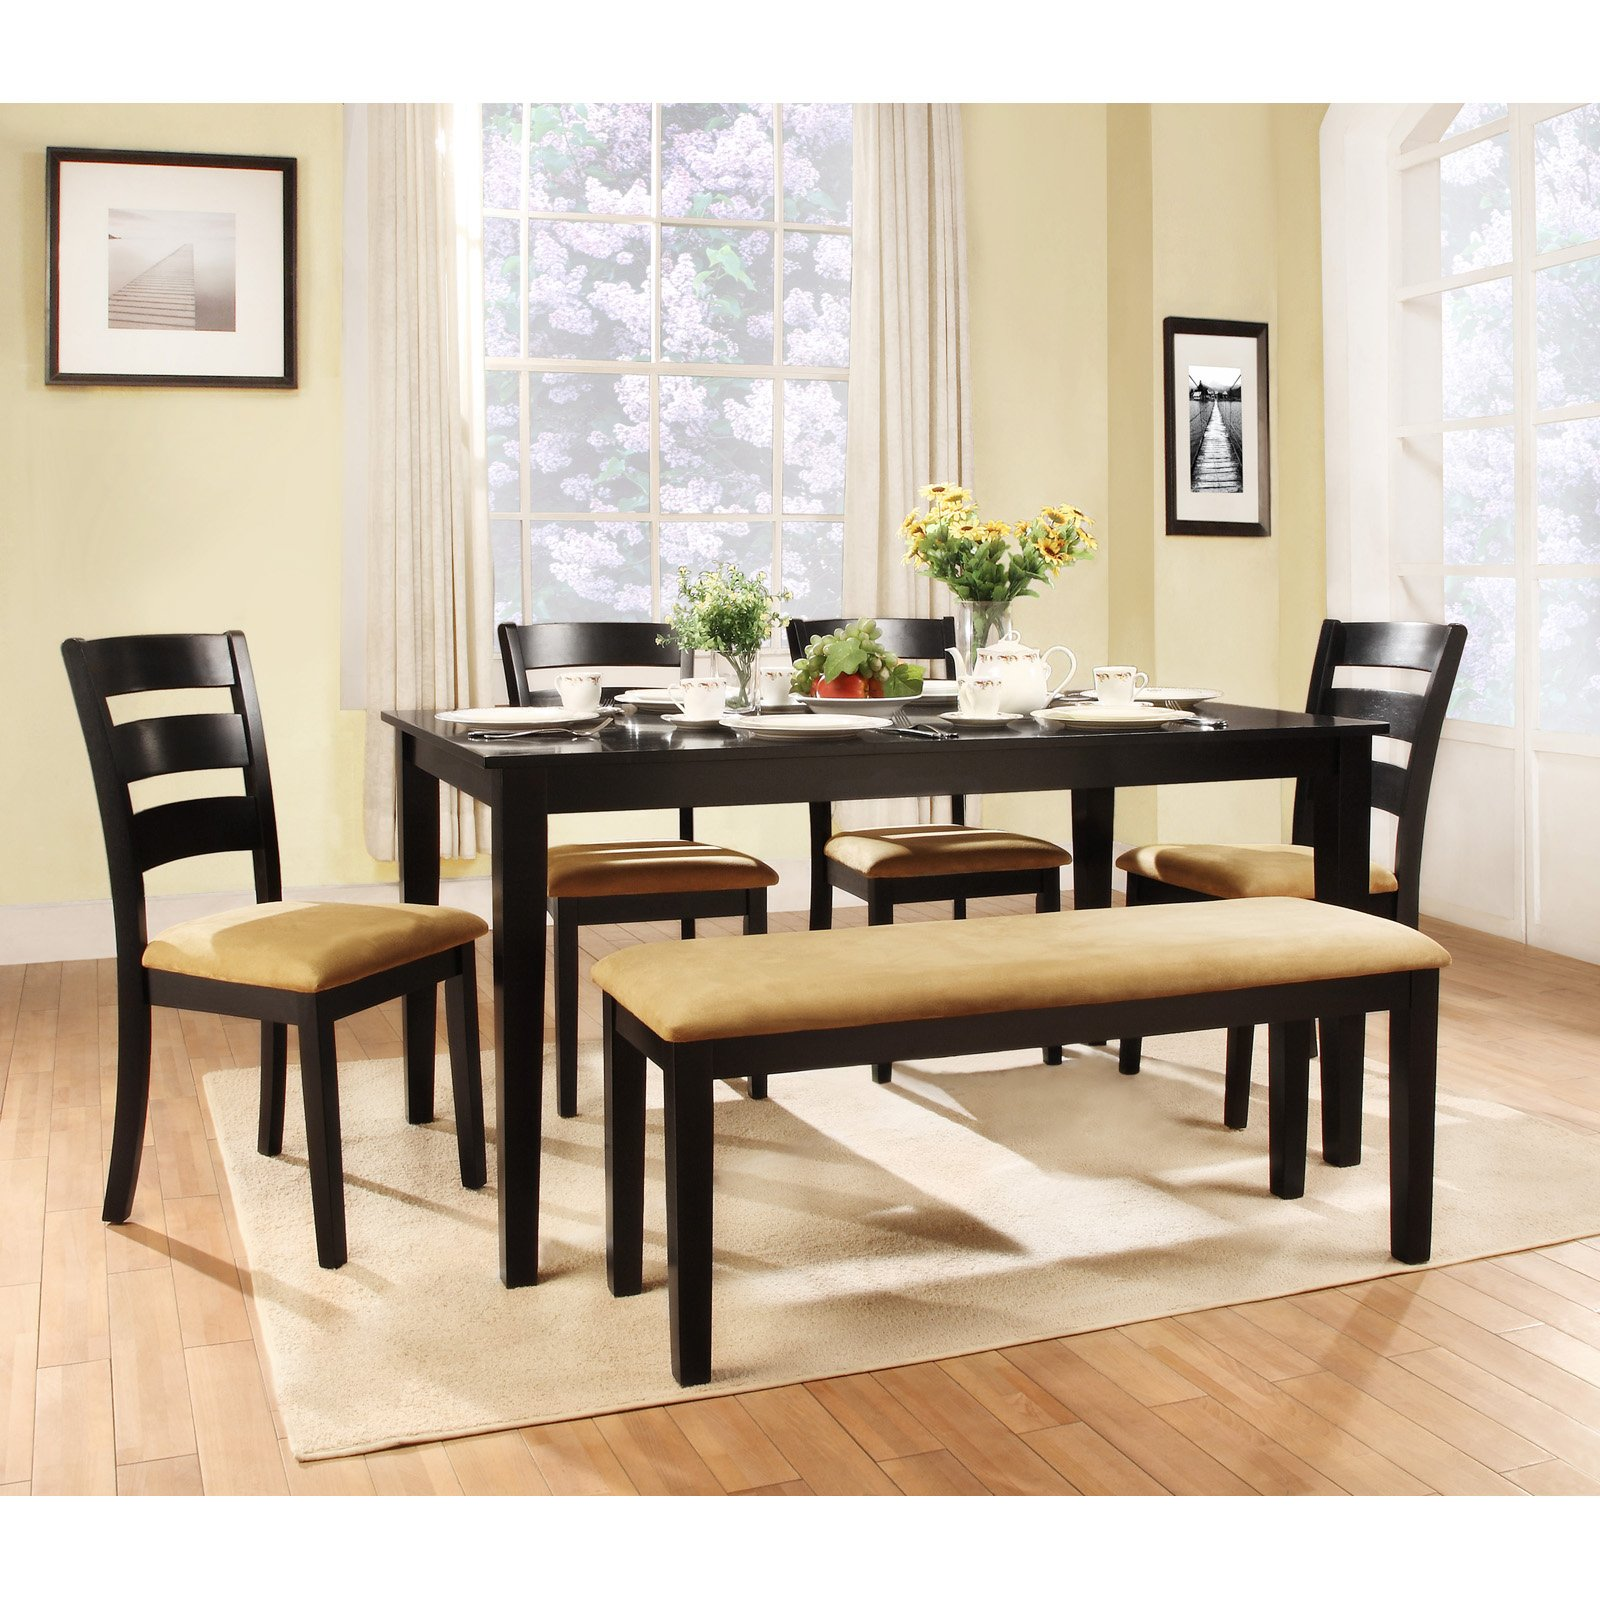 dining set with bench and chairs leather eames chair modern style table ideas homesfeed